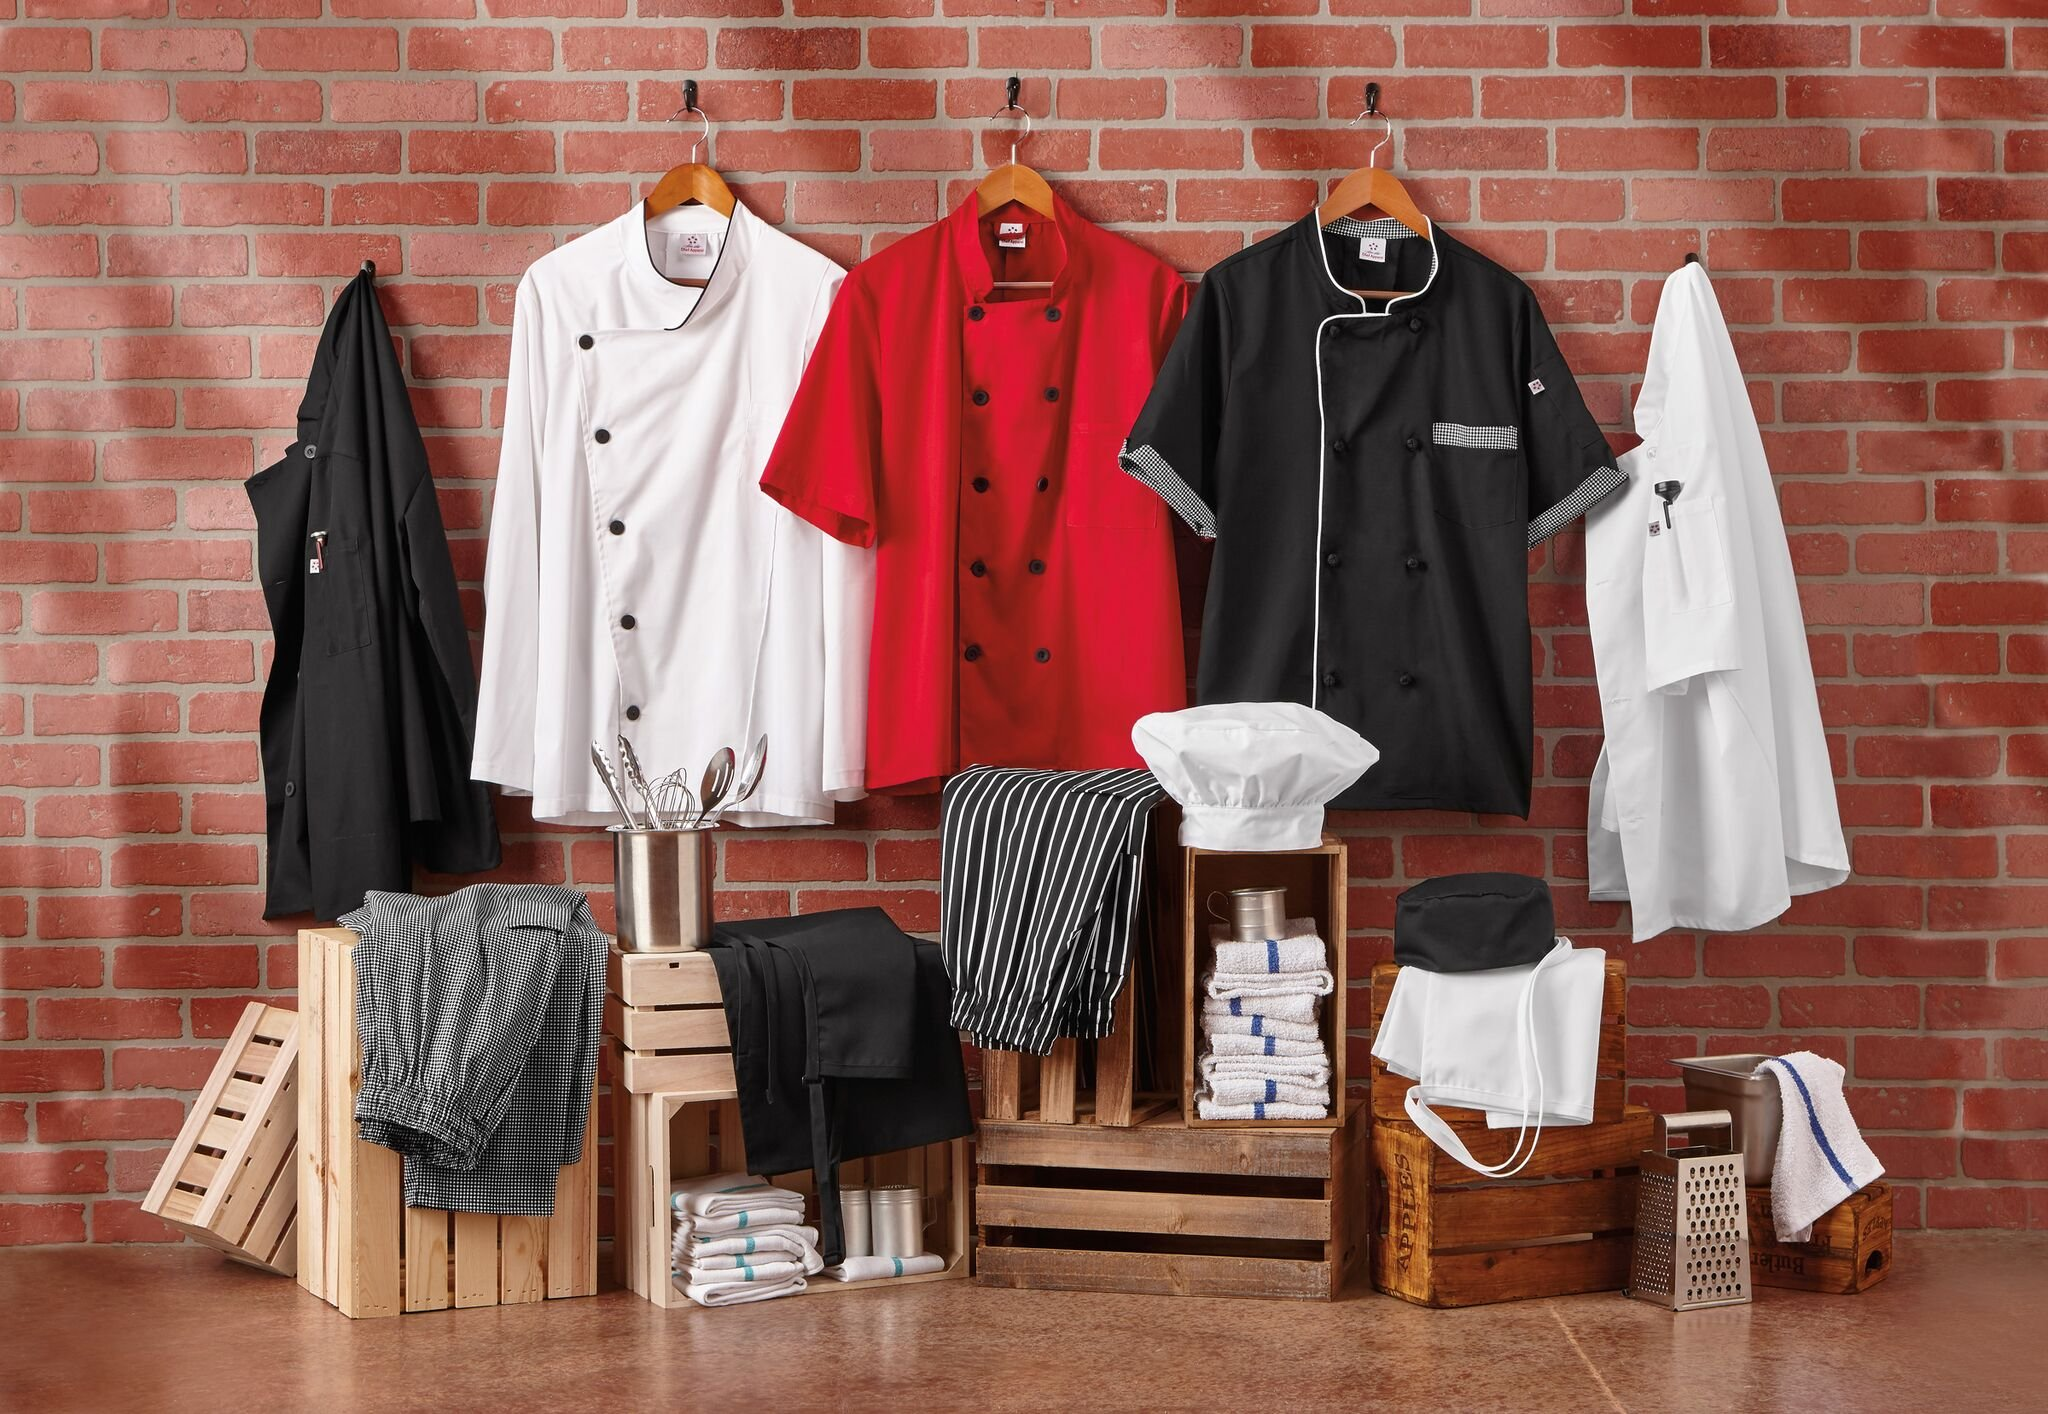 Five Star 18120 Unisex Executive Chef Coat (White, XXX-Large) by Five Star (Image #4)